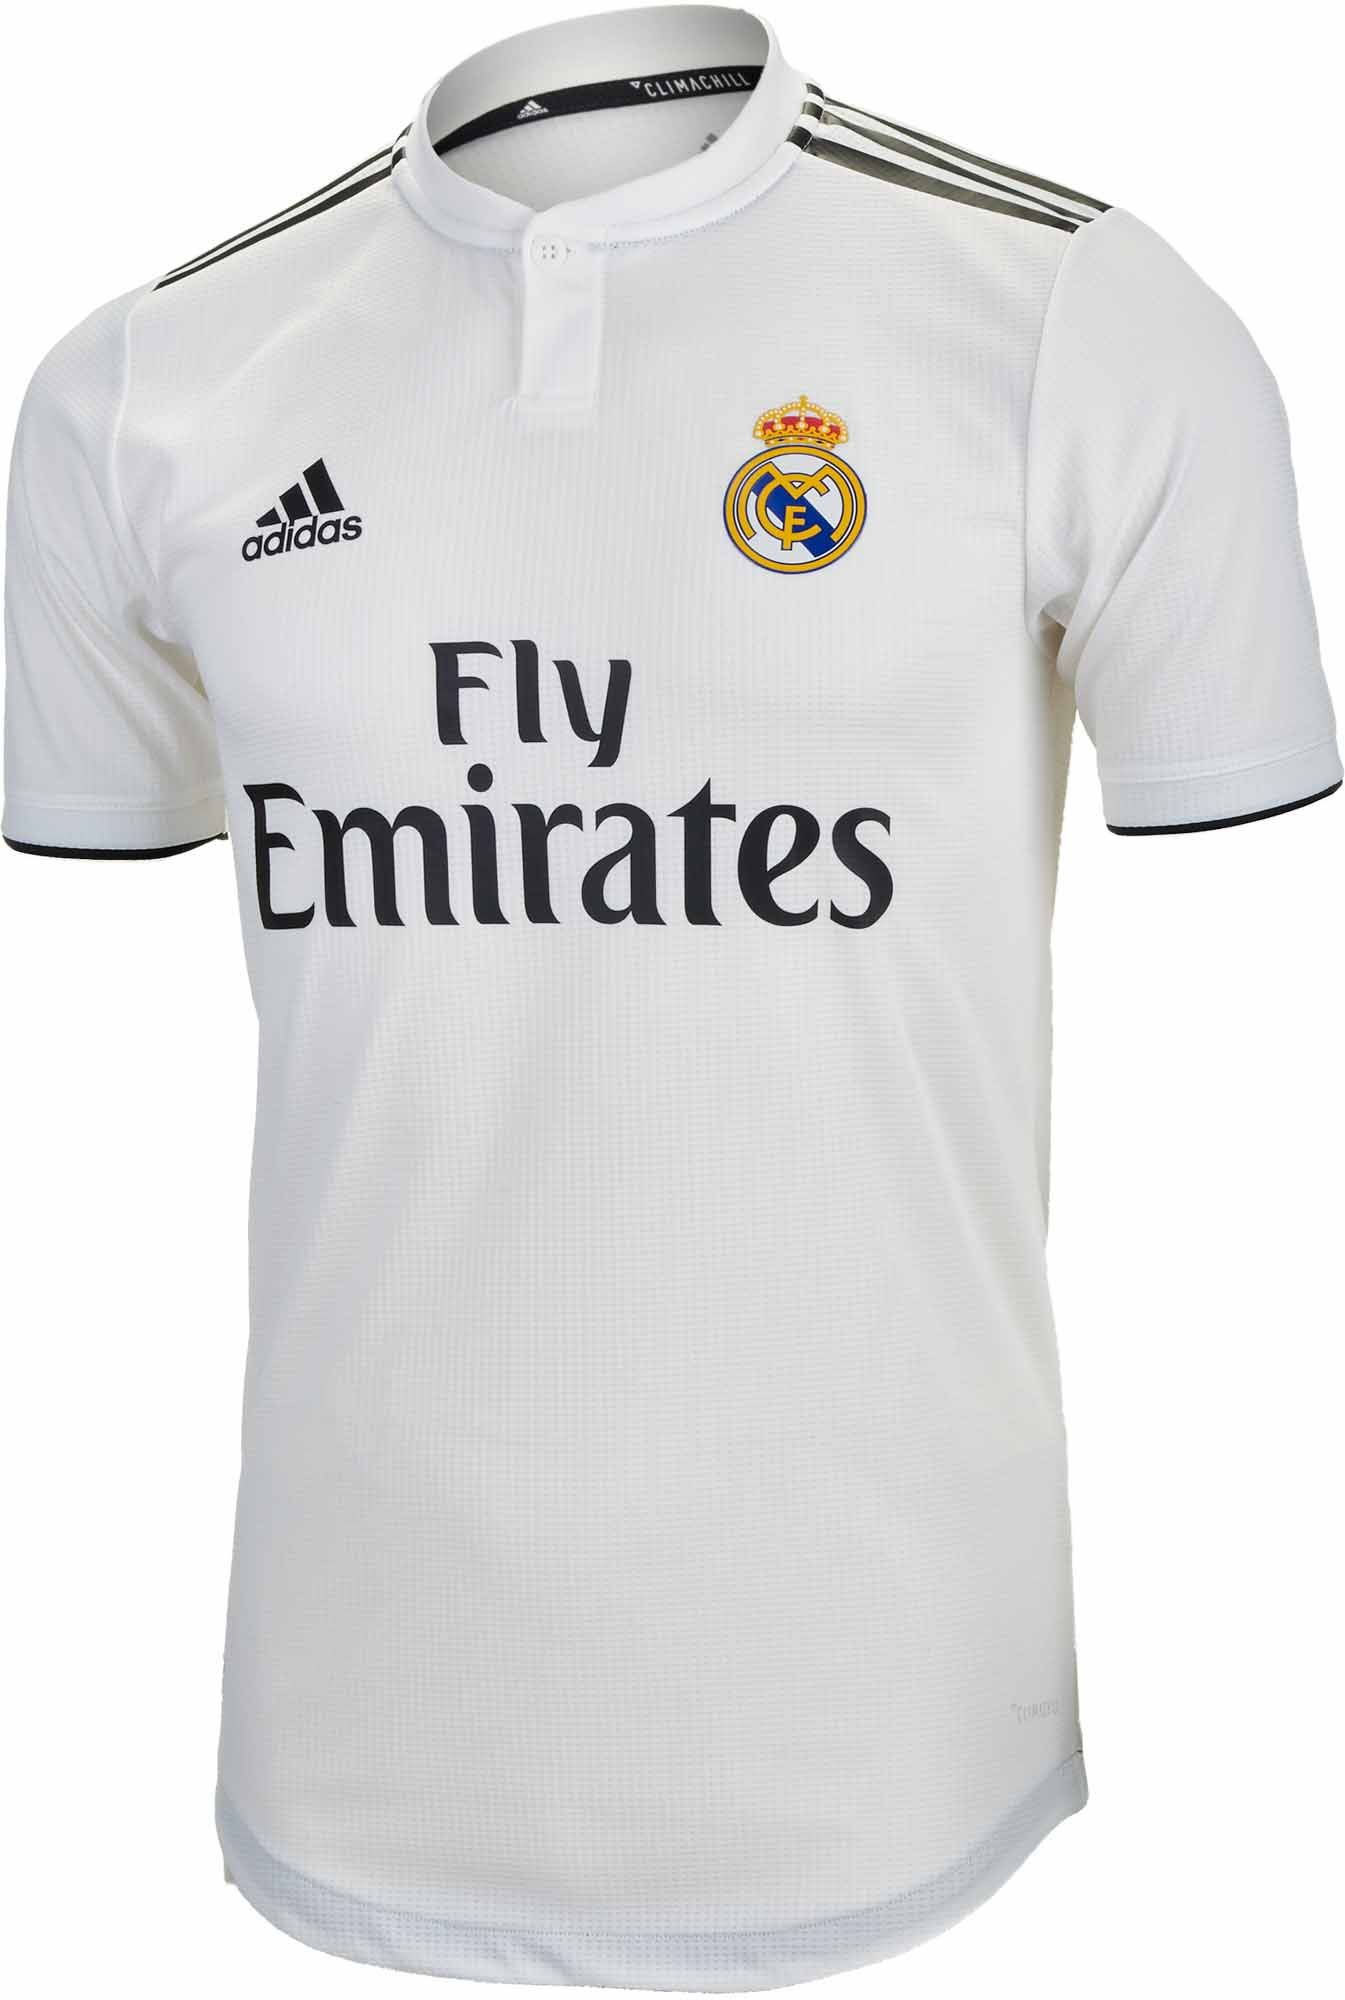 2018 19 adidas Real Madrid Authentic Home Jersey. Fresh at www.soccerpro.com 531a109cc491b